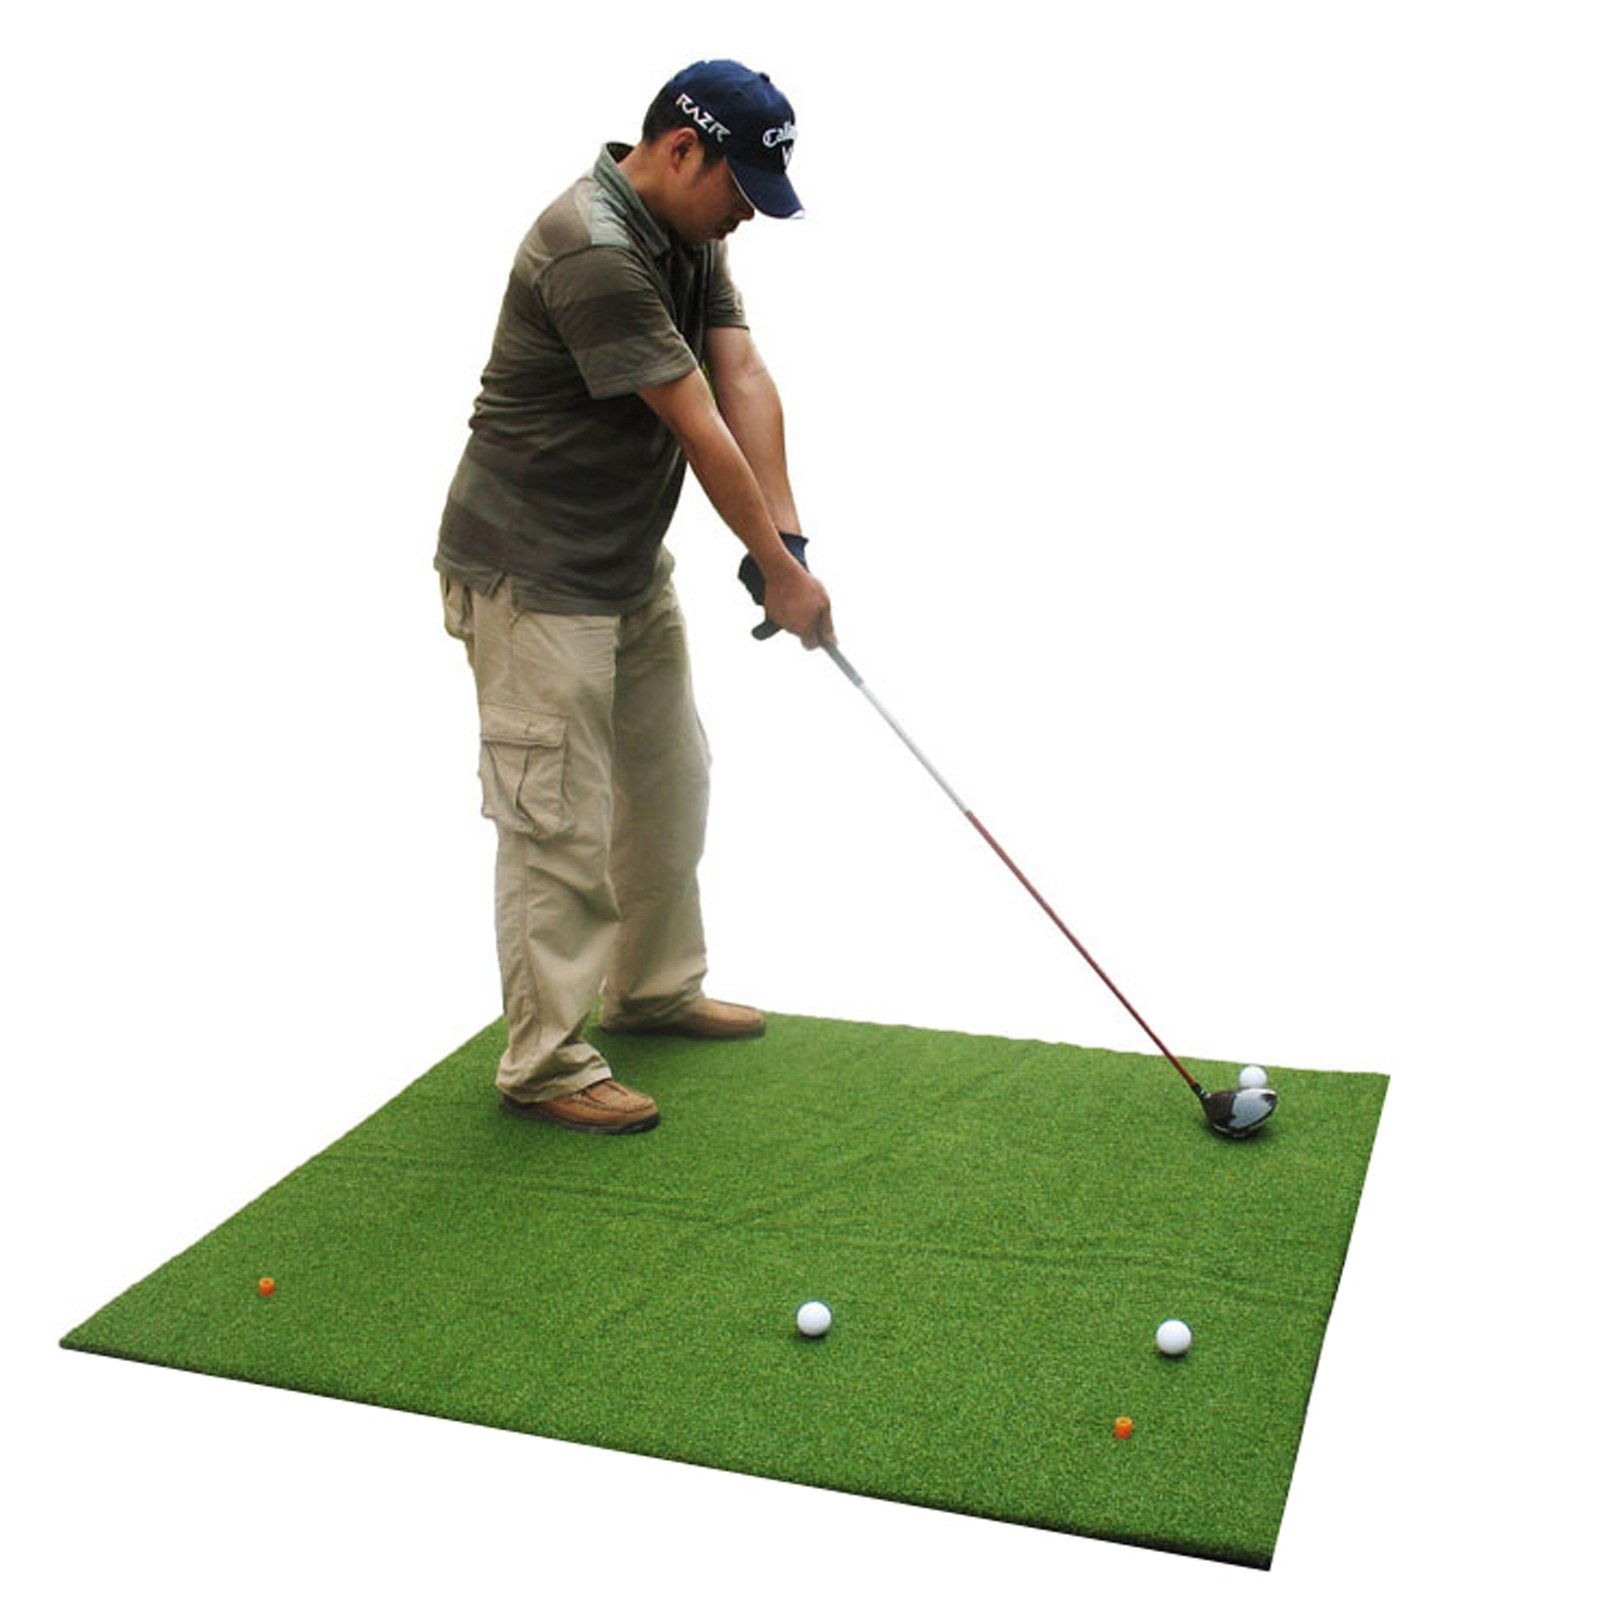 Popsport 3' x 4'/3' x 5'/4' x 4'/4' x 5'/5' x 5' Golf Mats Practice Golf Hitting Mat Portable Outdoor Sports Golf Training Turf Mat for Indoor Backyard or Outdoor Practice (3' x 4') by Popsport